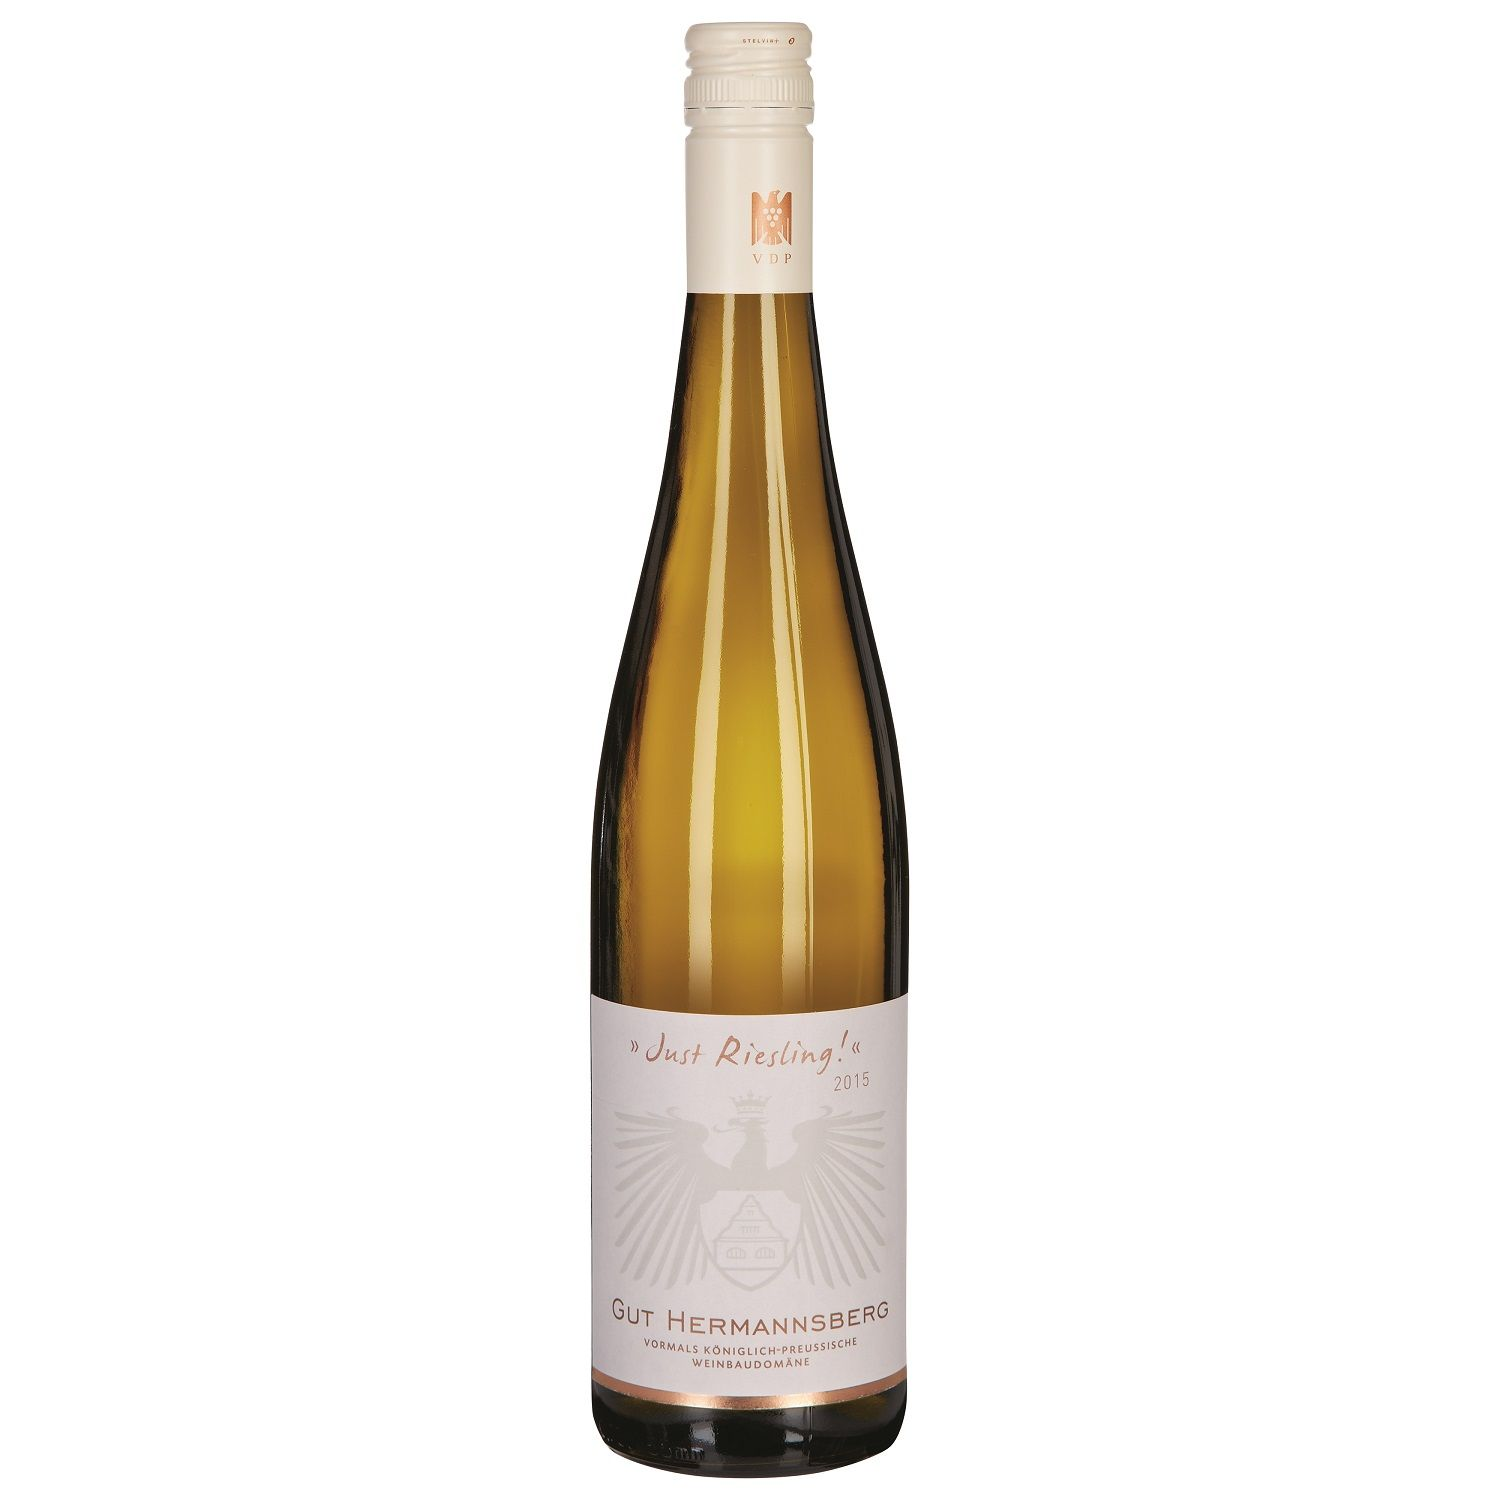 »Just Riesling«, Riesling 2015, Gut Hermannsberg